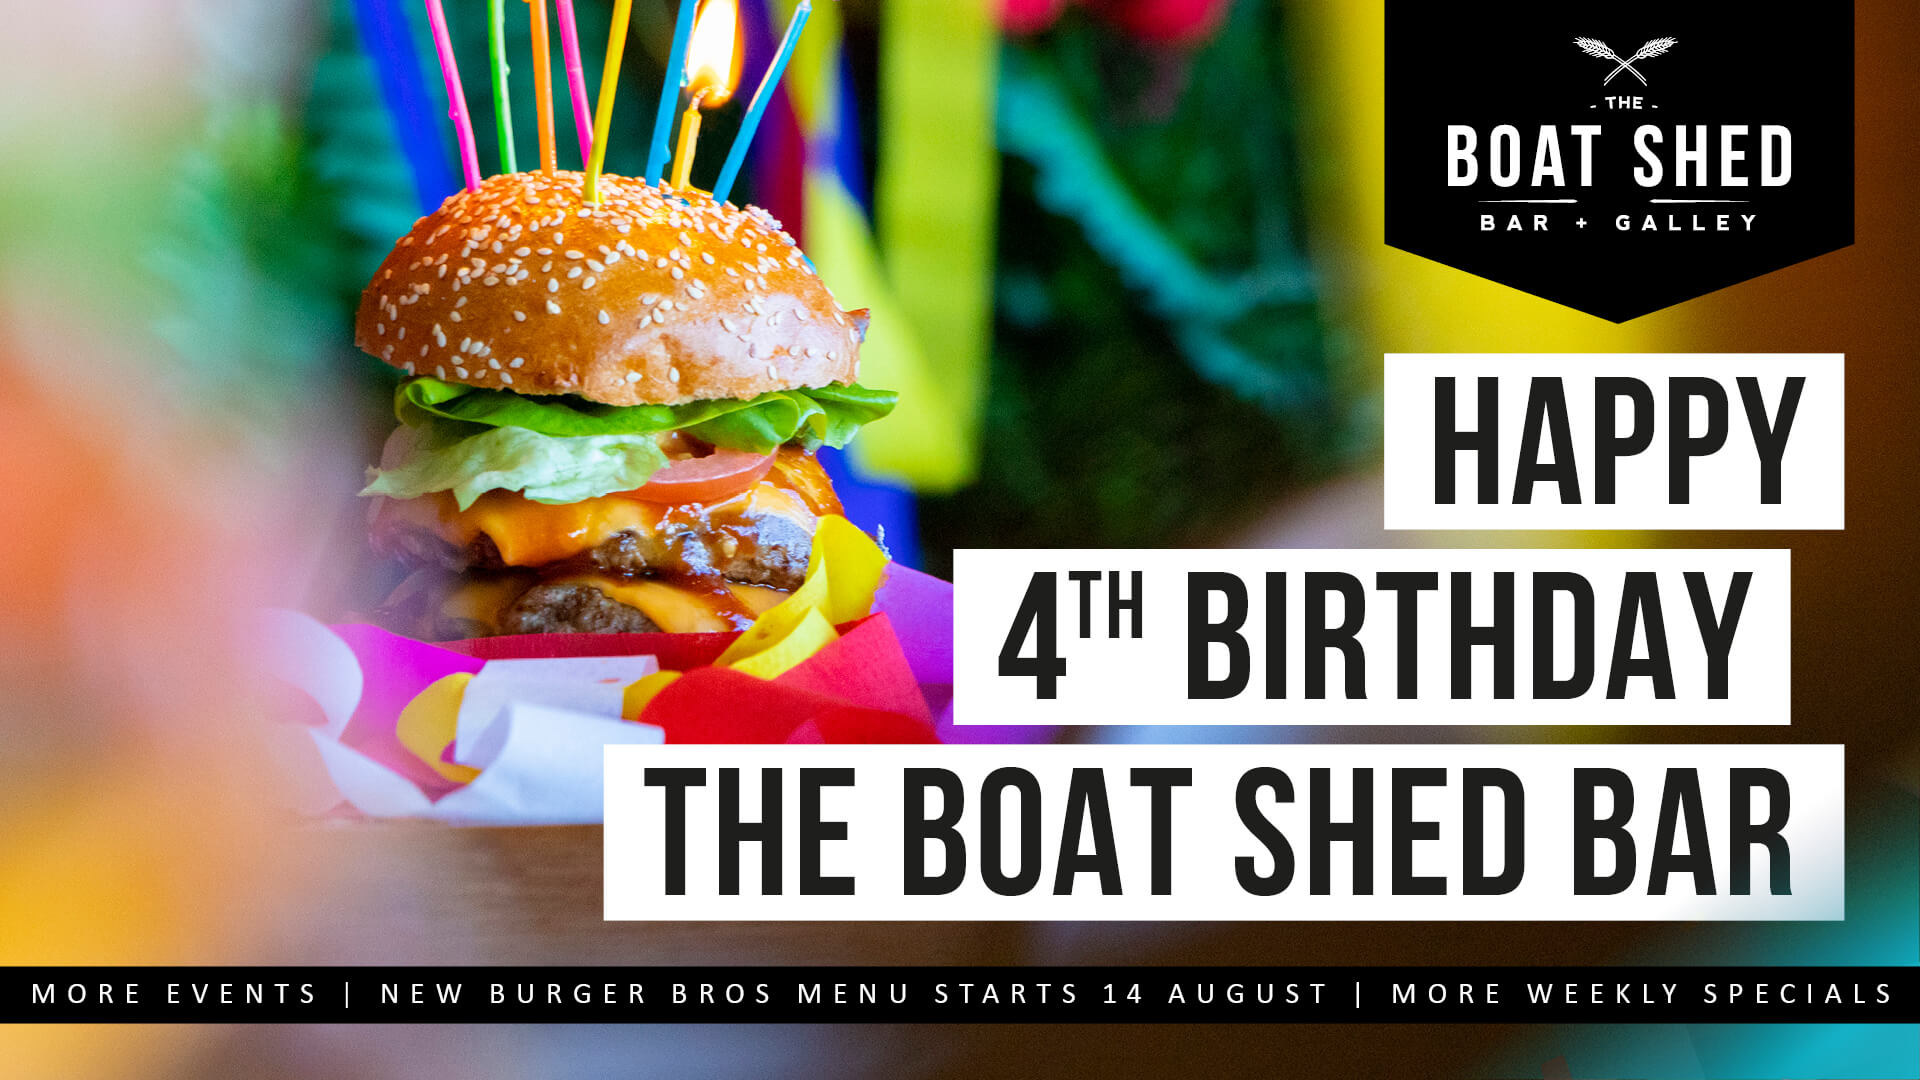 Happy 4th Birthday The Boat Shed Bar! What's new?